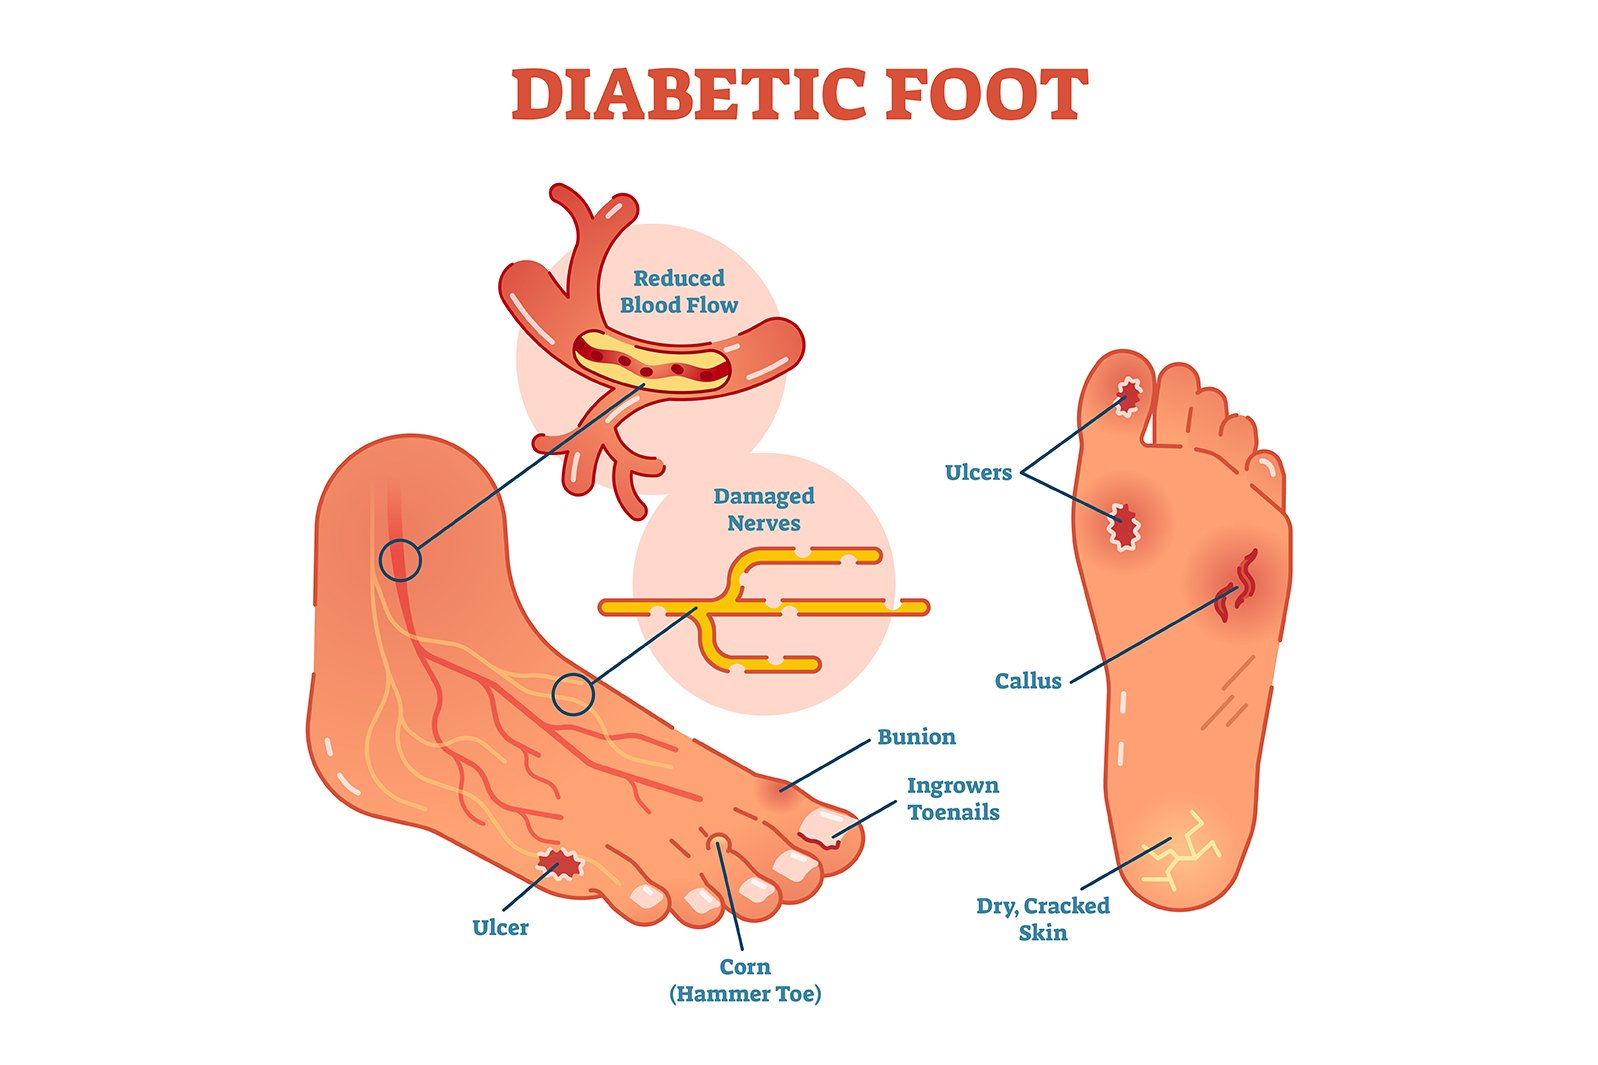 Nerve Pain is Not Just for Diabetics